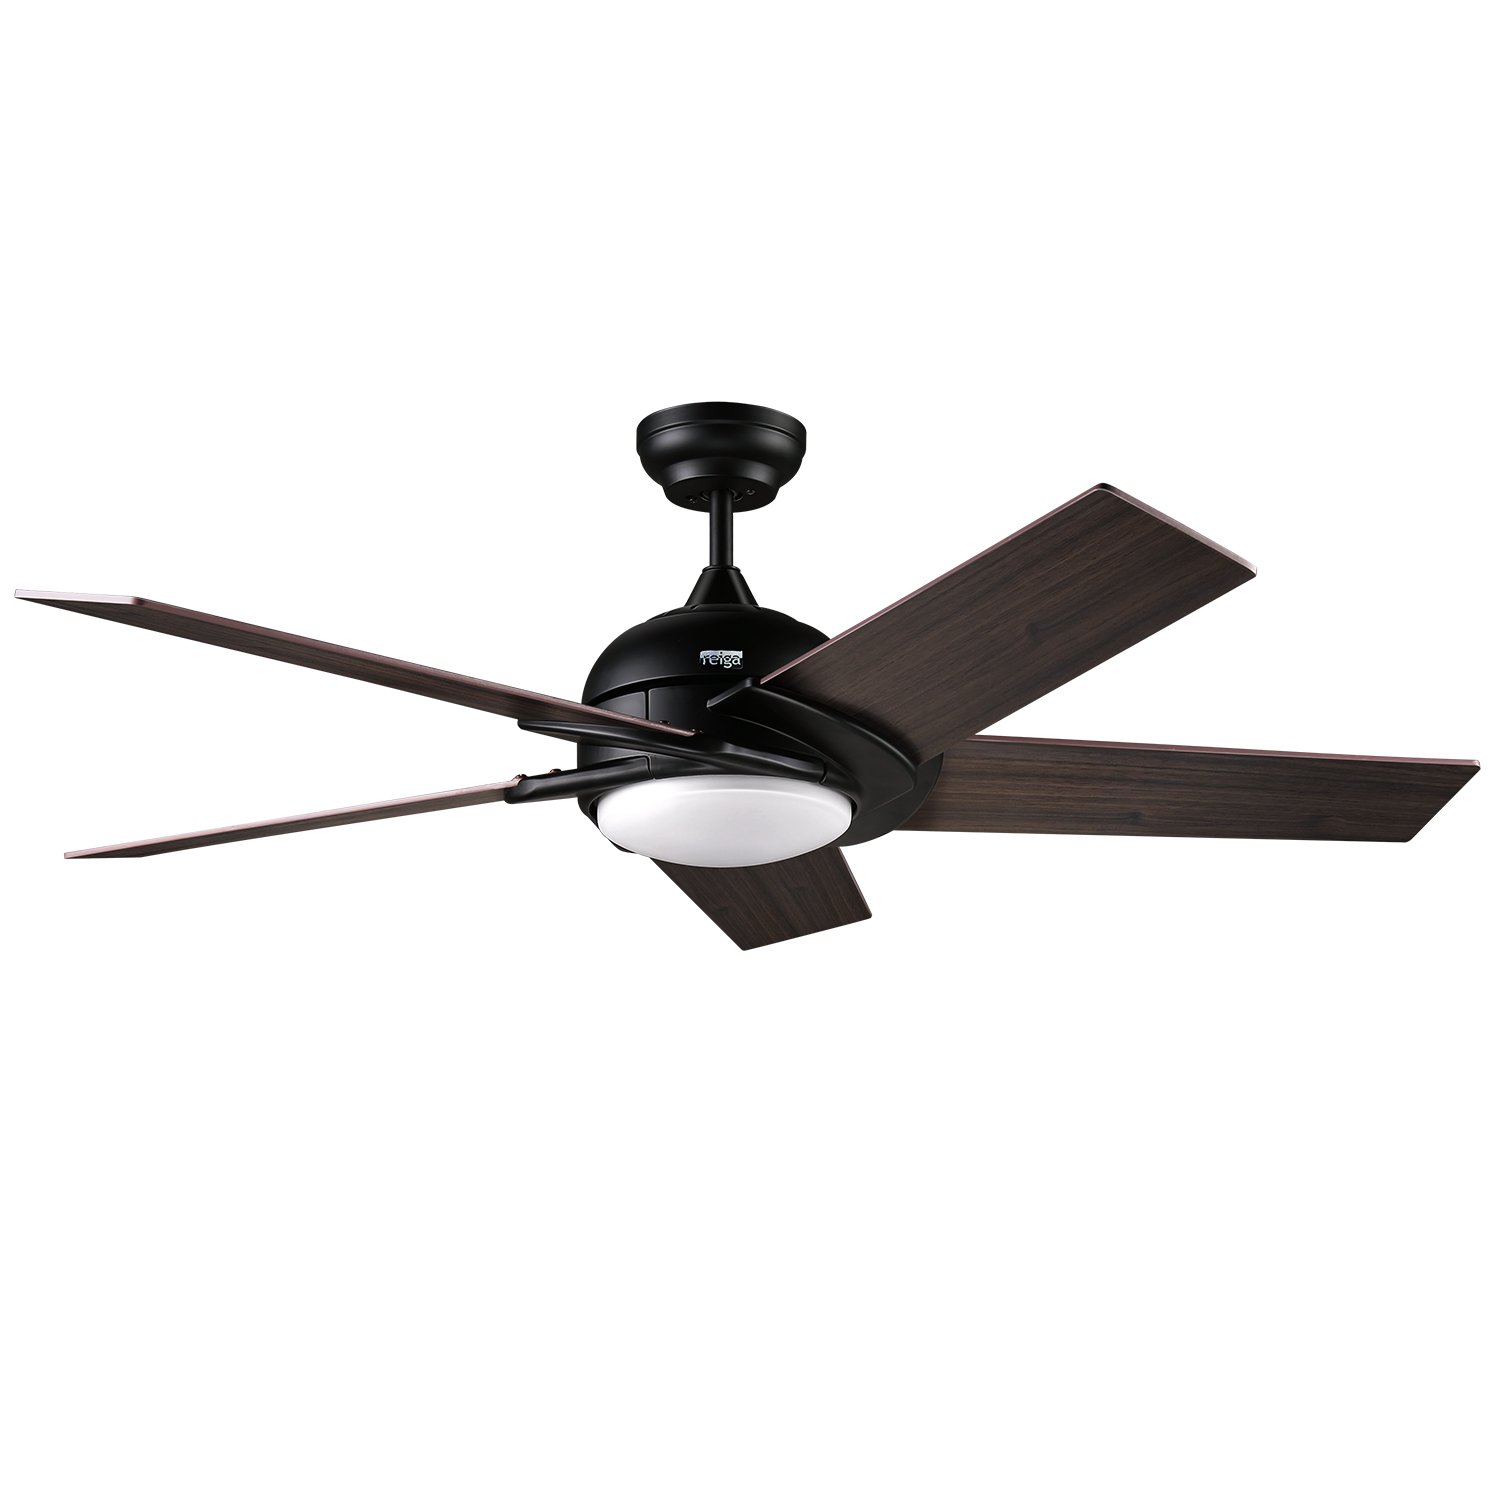 reiga 52-Inch 5 Matt Black Hand-Painted Blades Silent Ceiling Fan with LED Light Remote Control